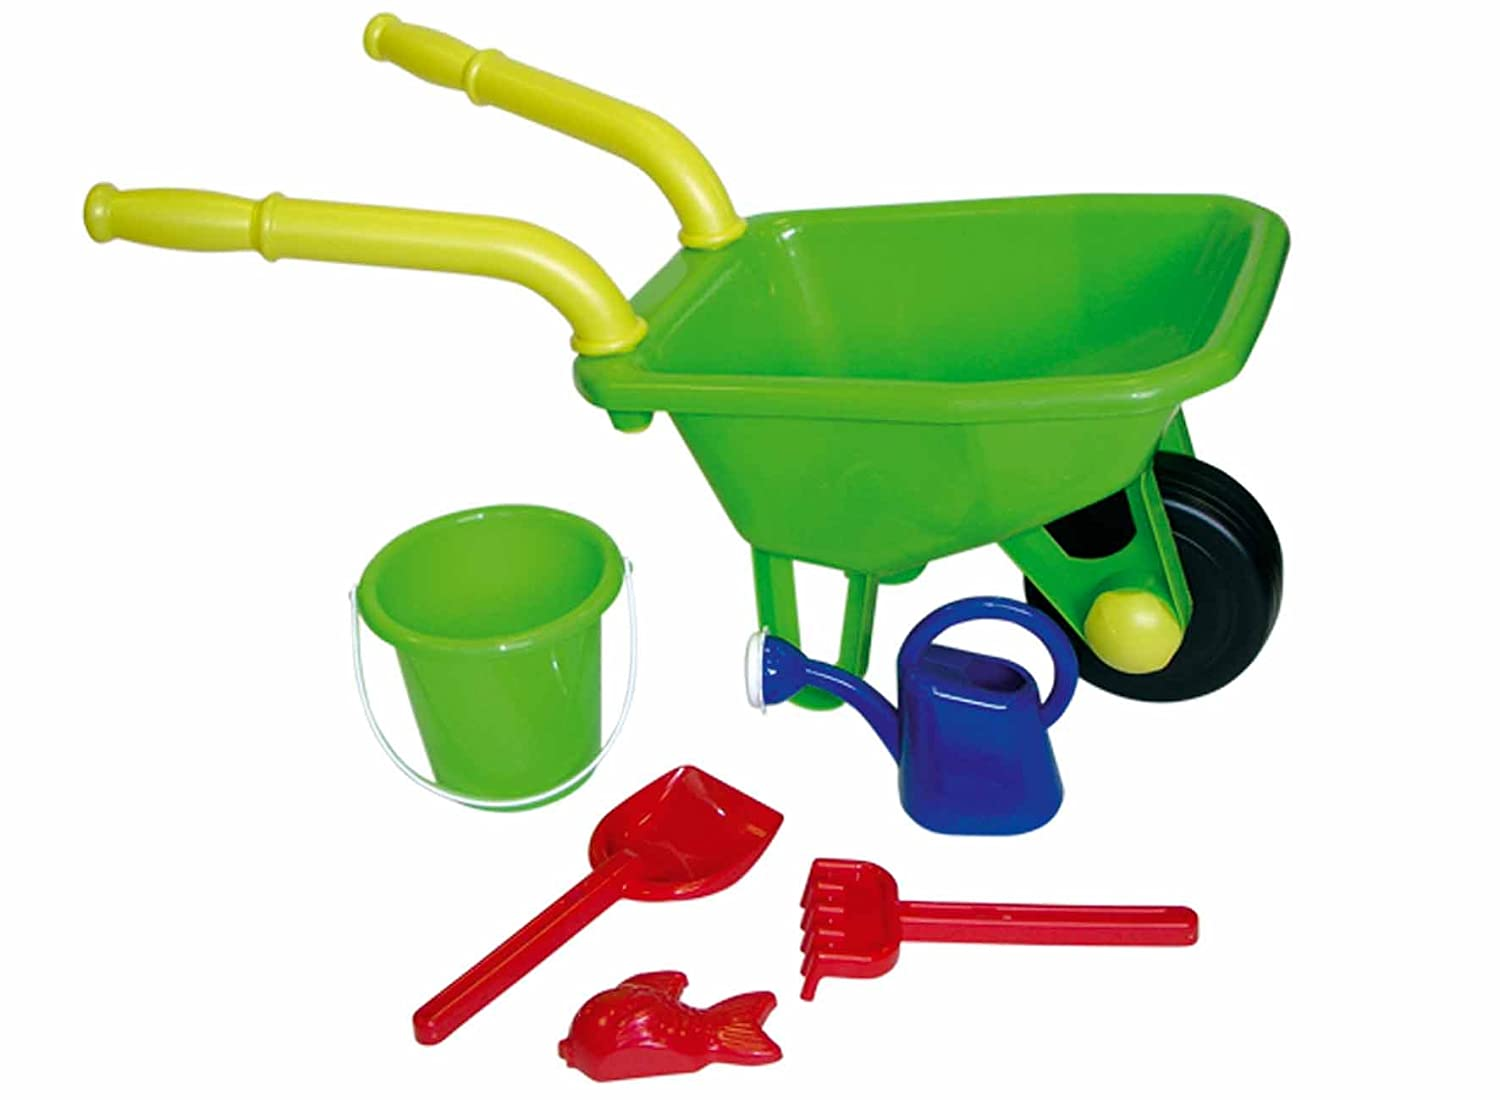 Kids childrens childs wheelbarrow gardening tools play set for Childrens gardening tools